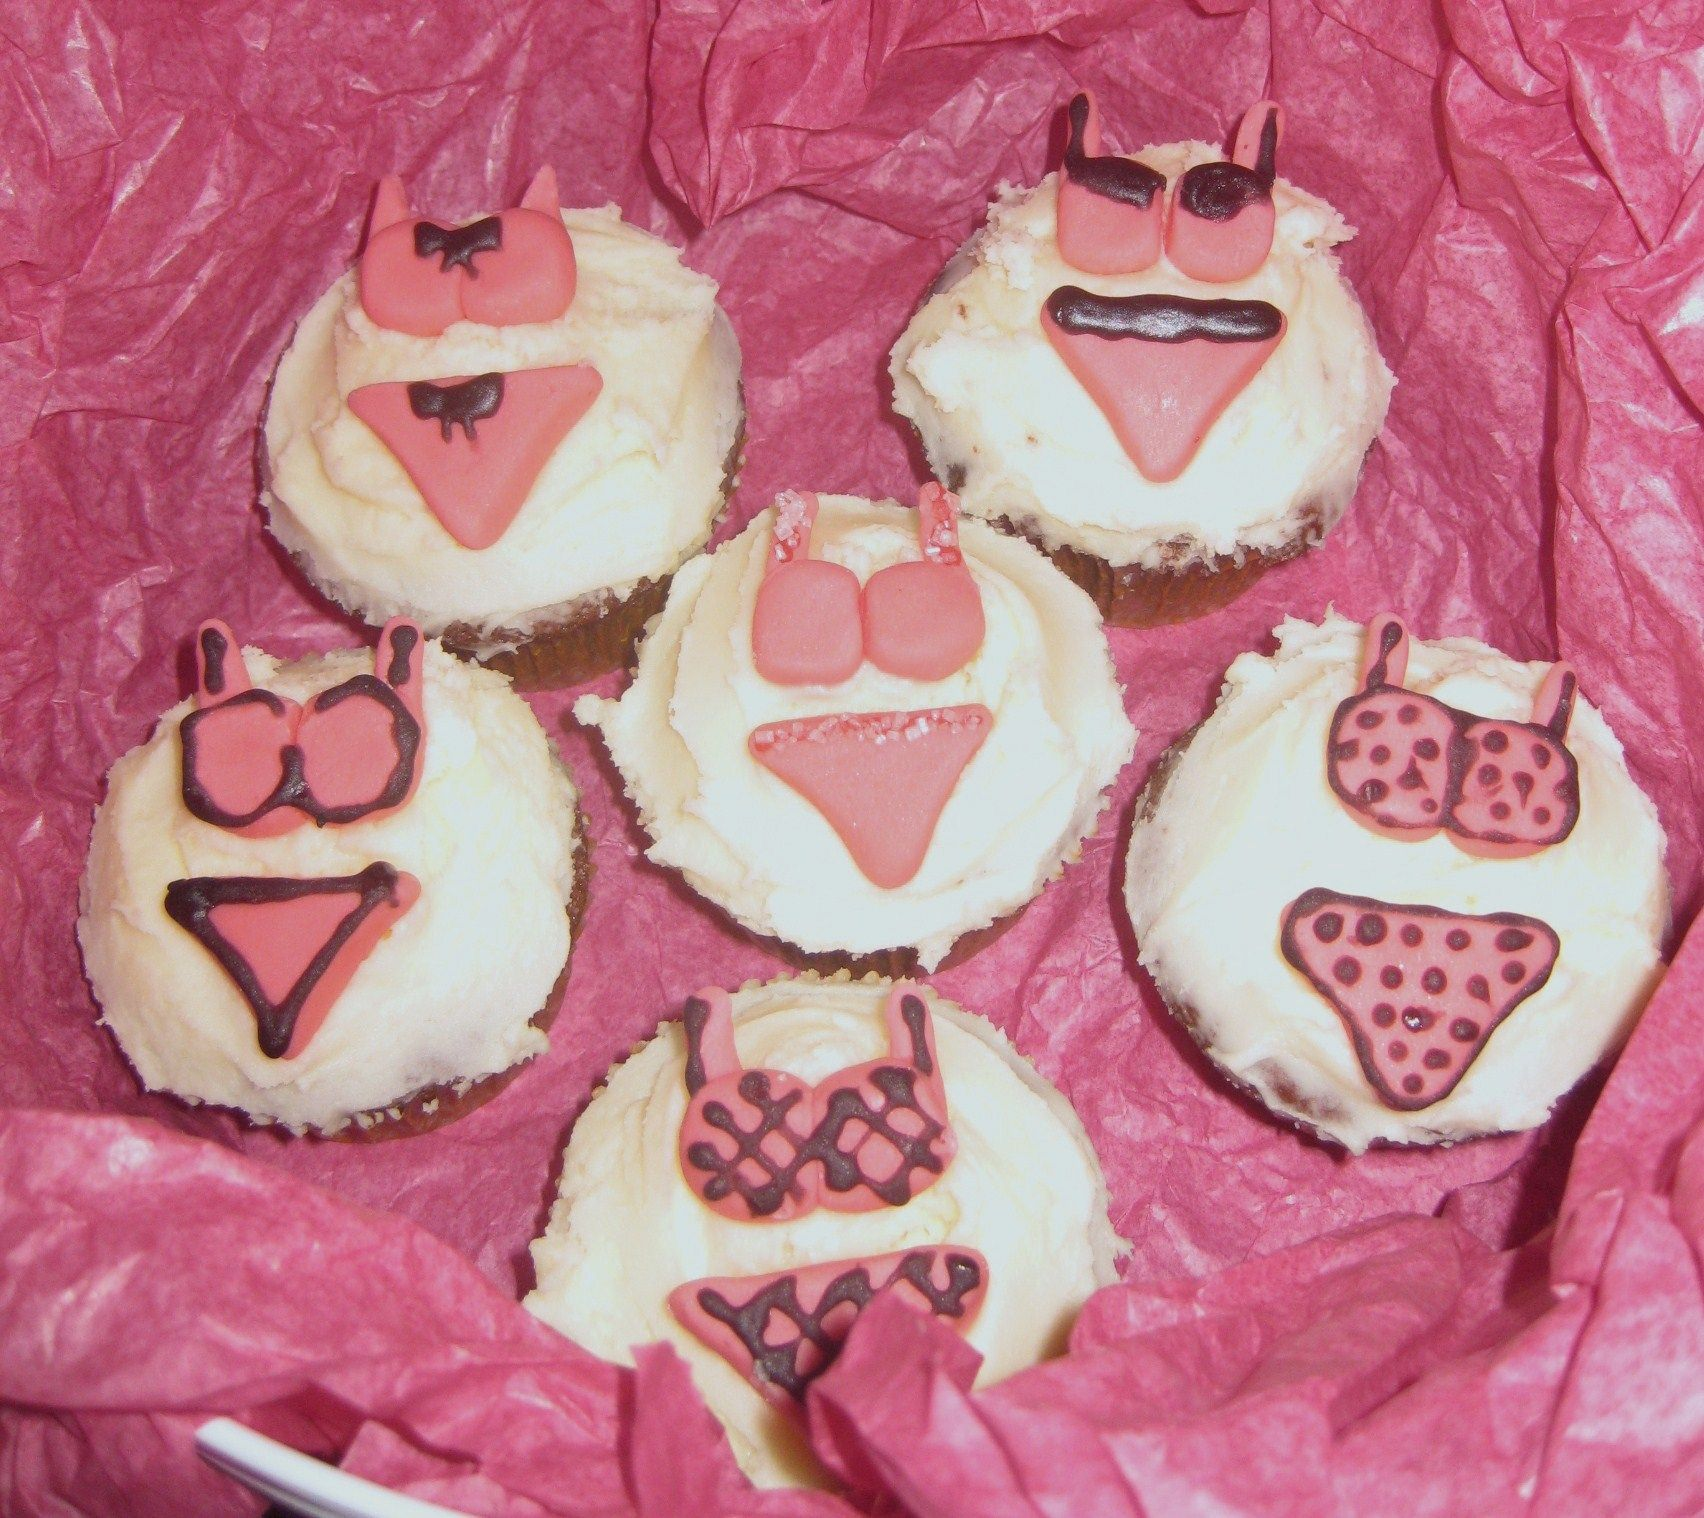 A few hen party cupcakes for a lovely bride-to-be.